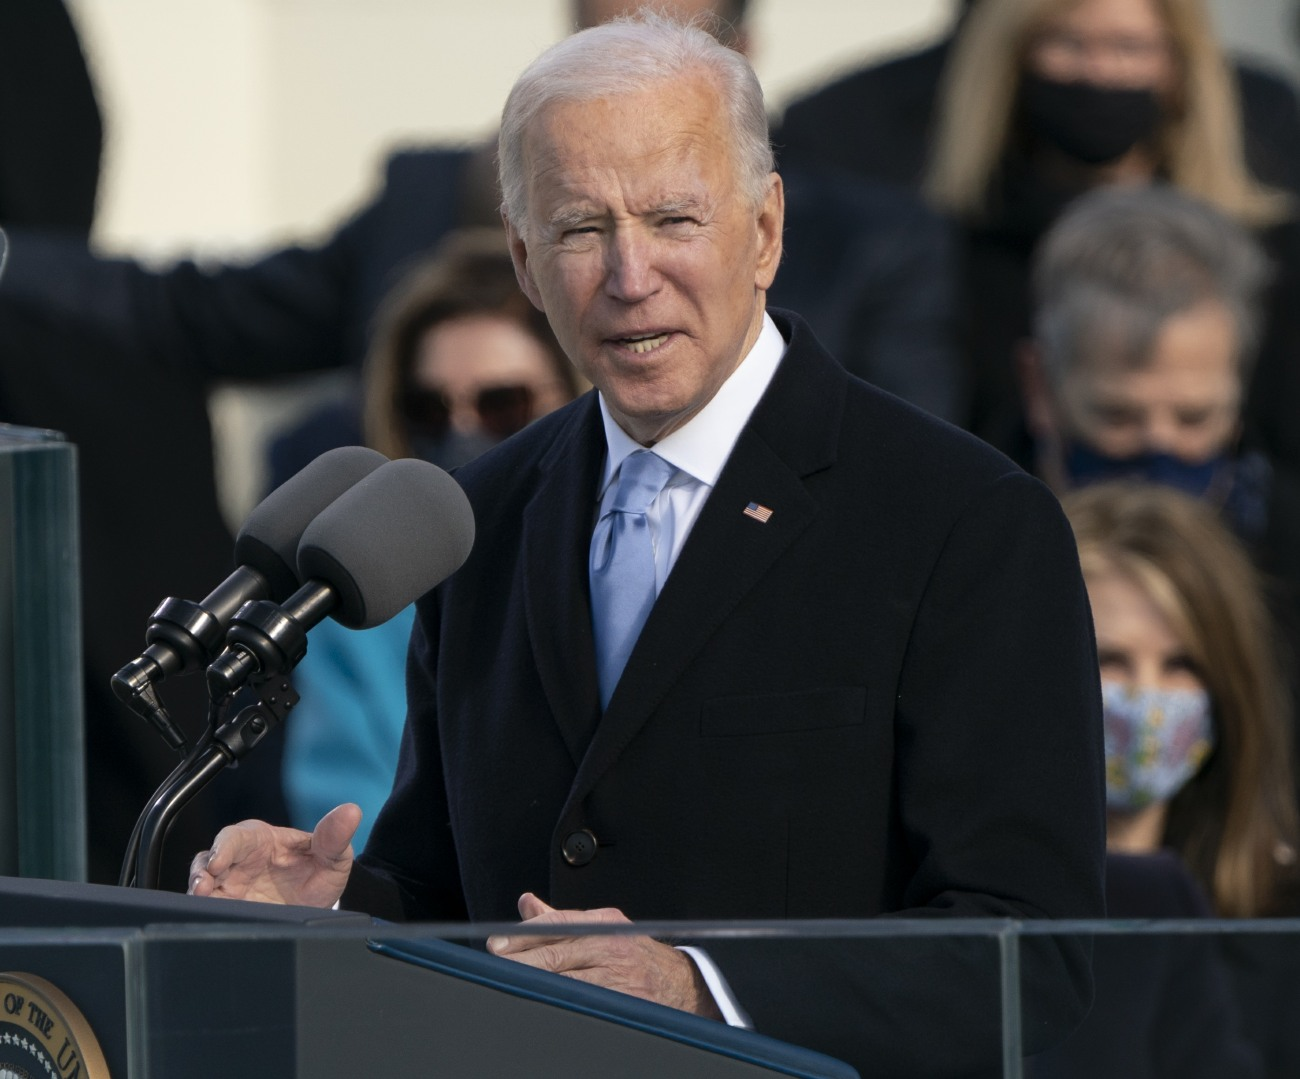 Biden takes the Oath of Office as the 46th President of the US